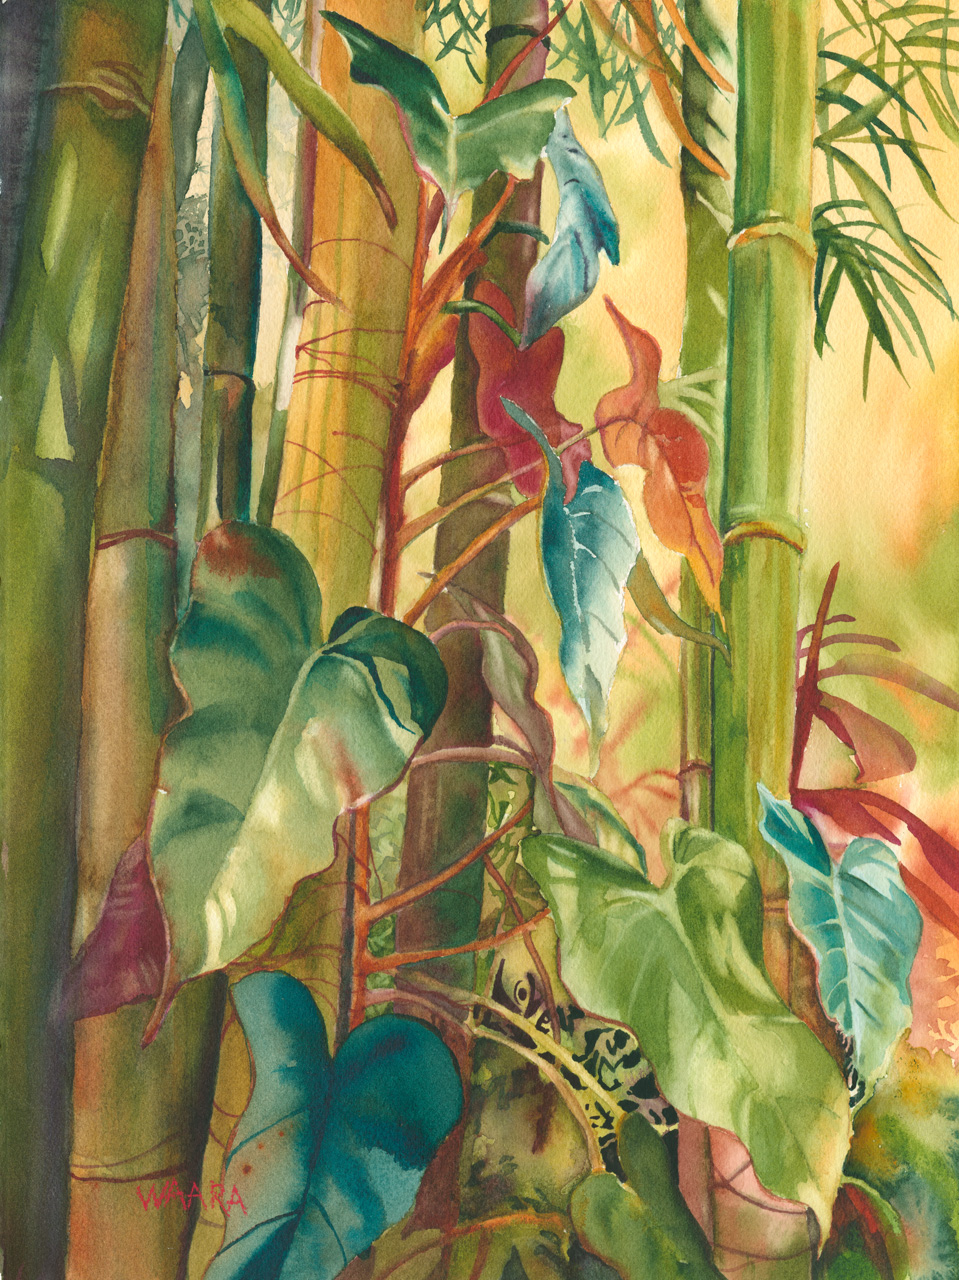 Watercolor painting of heart shaped vines growing among bamboo